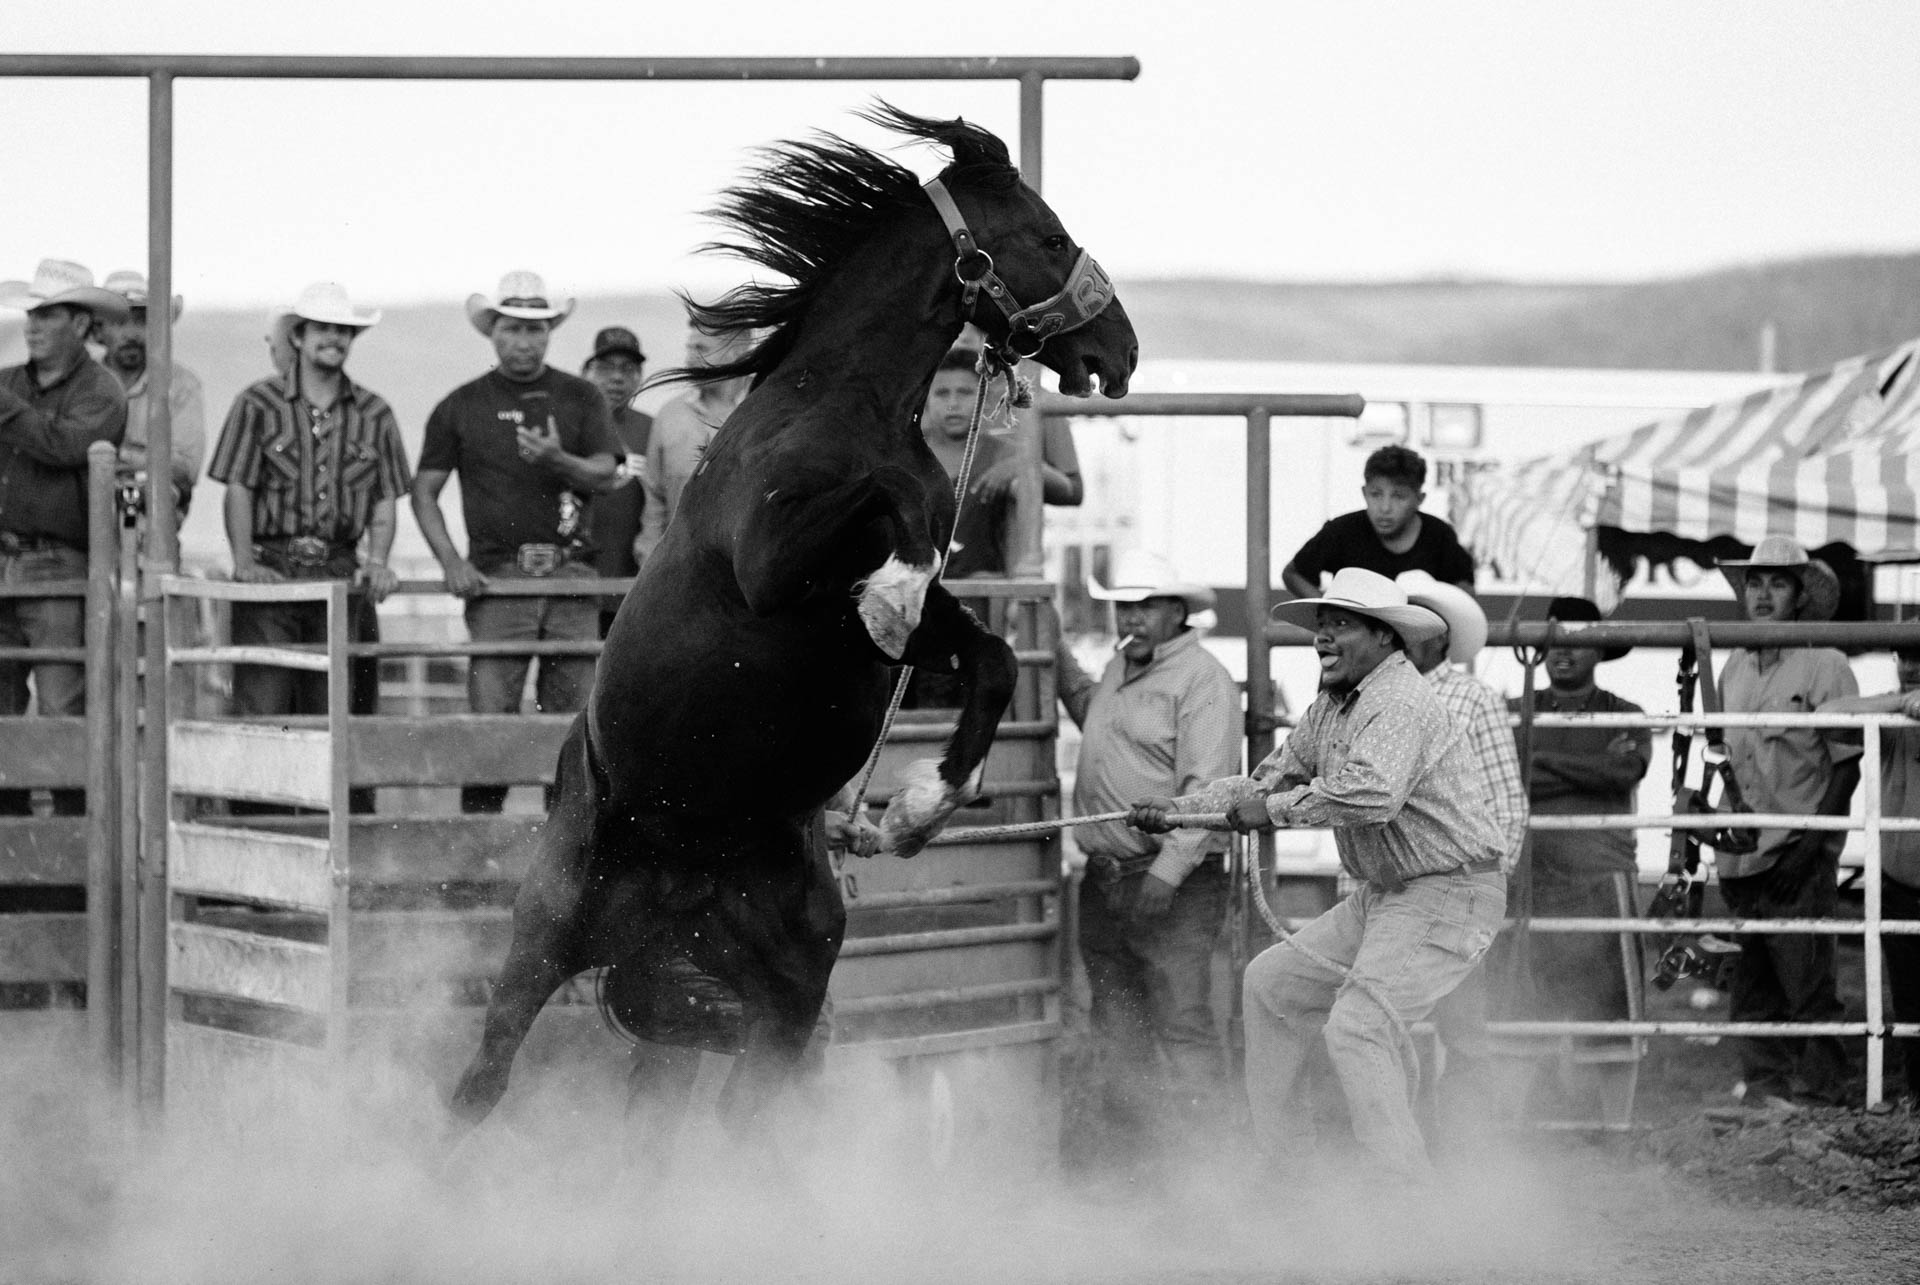 indian-rodeo-wild-horse-race-action-dust.JPG